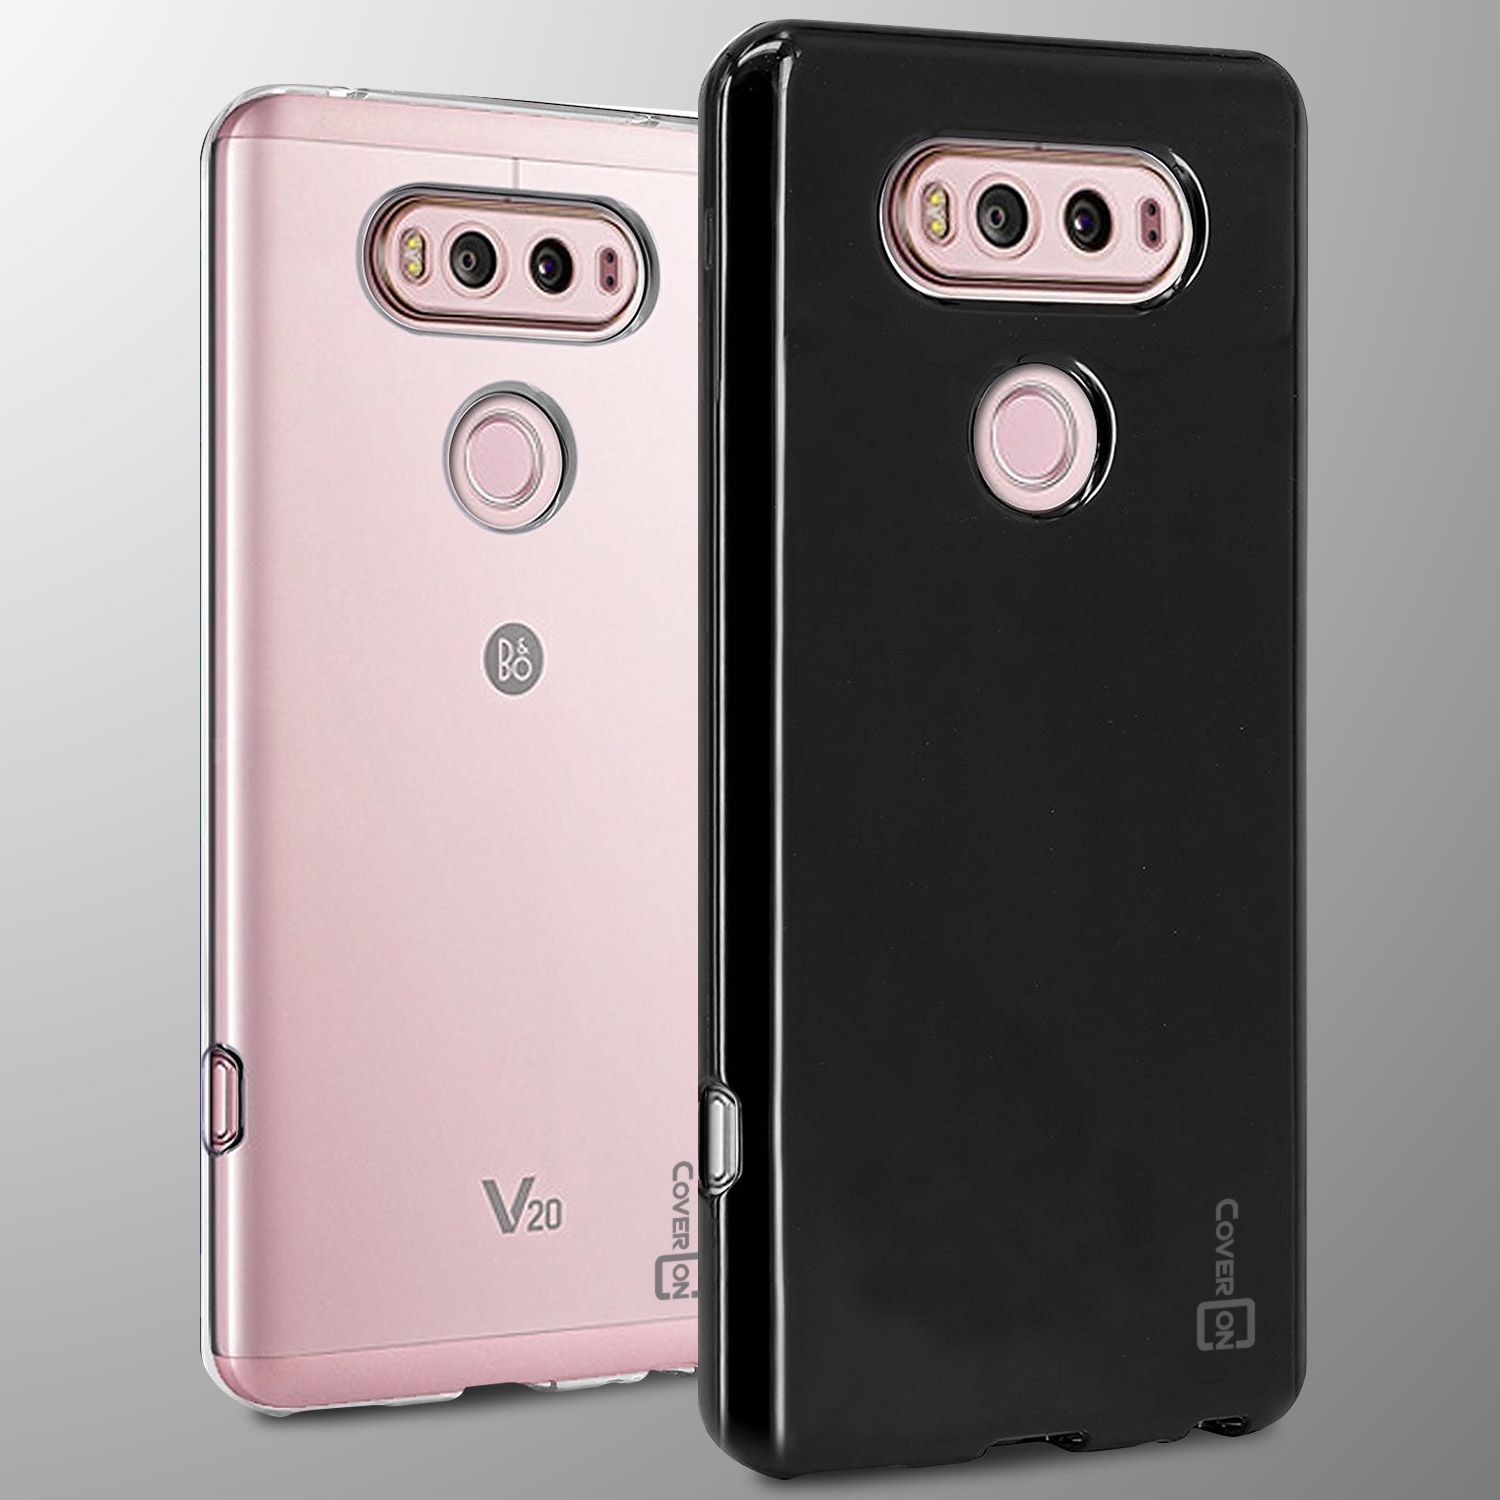 premium selection b8b7e c2c7b Details about For LG V20 Case TPU Flexible Slim Lightweight Phone Cover